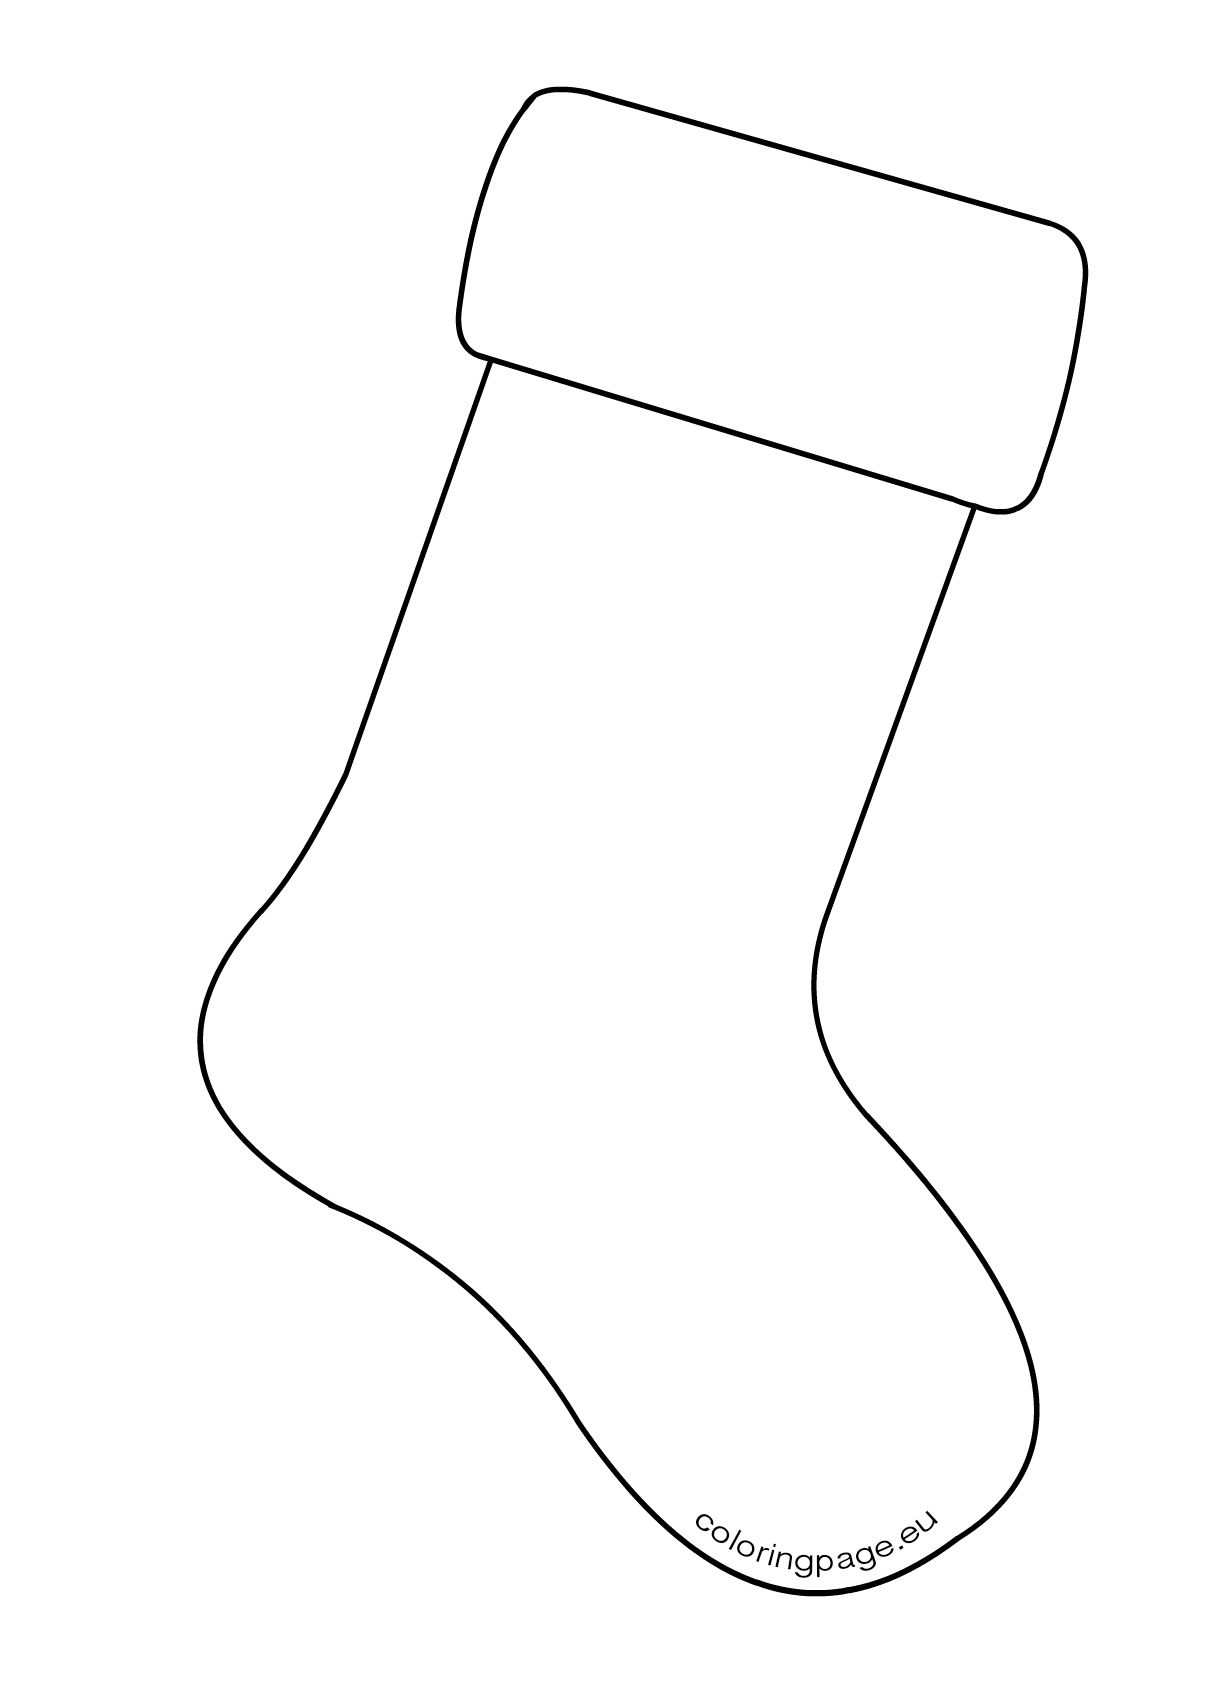 Christmas Stocking Template Large Christmas Stocking Template Stocking Template Large Christmas Stockings